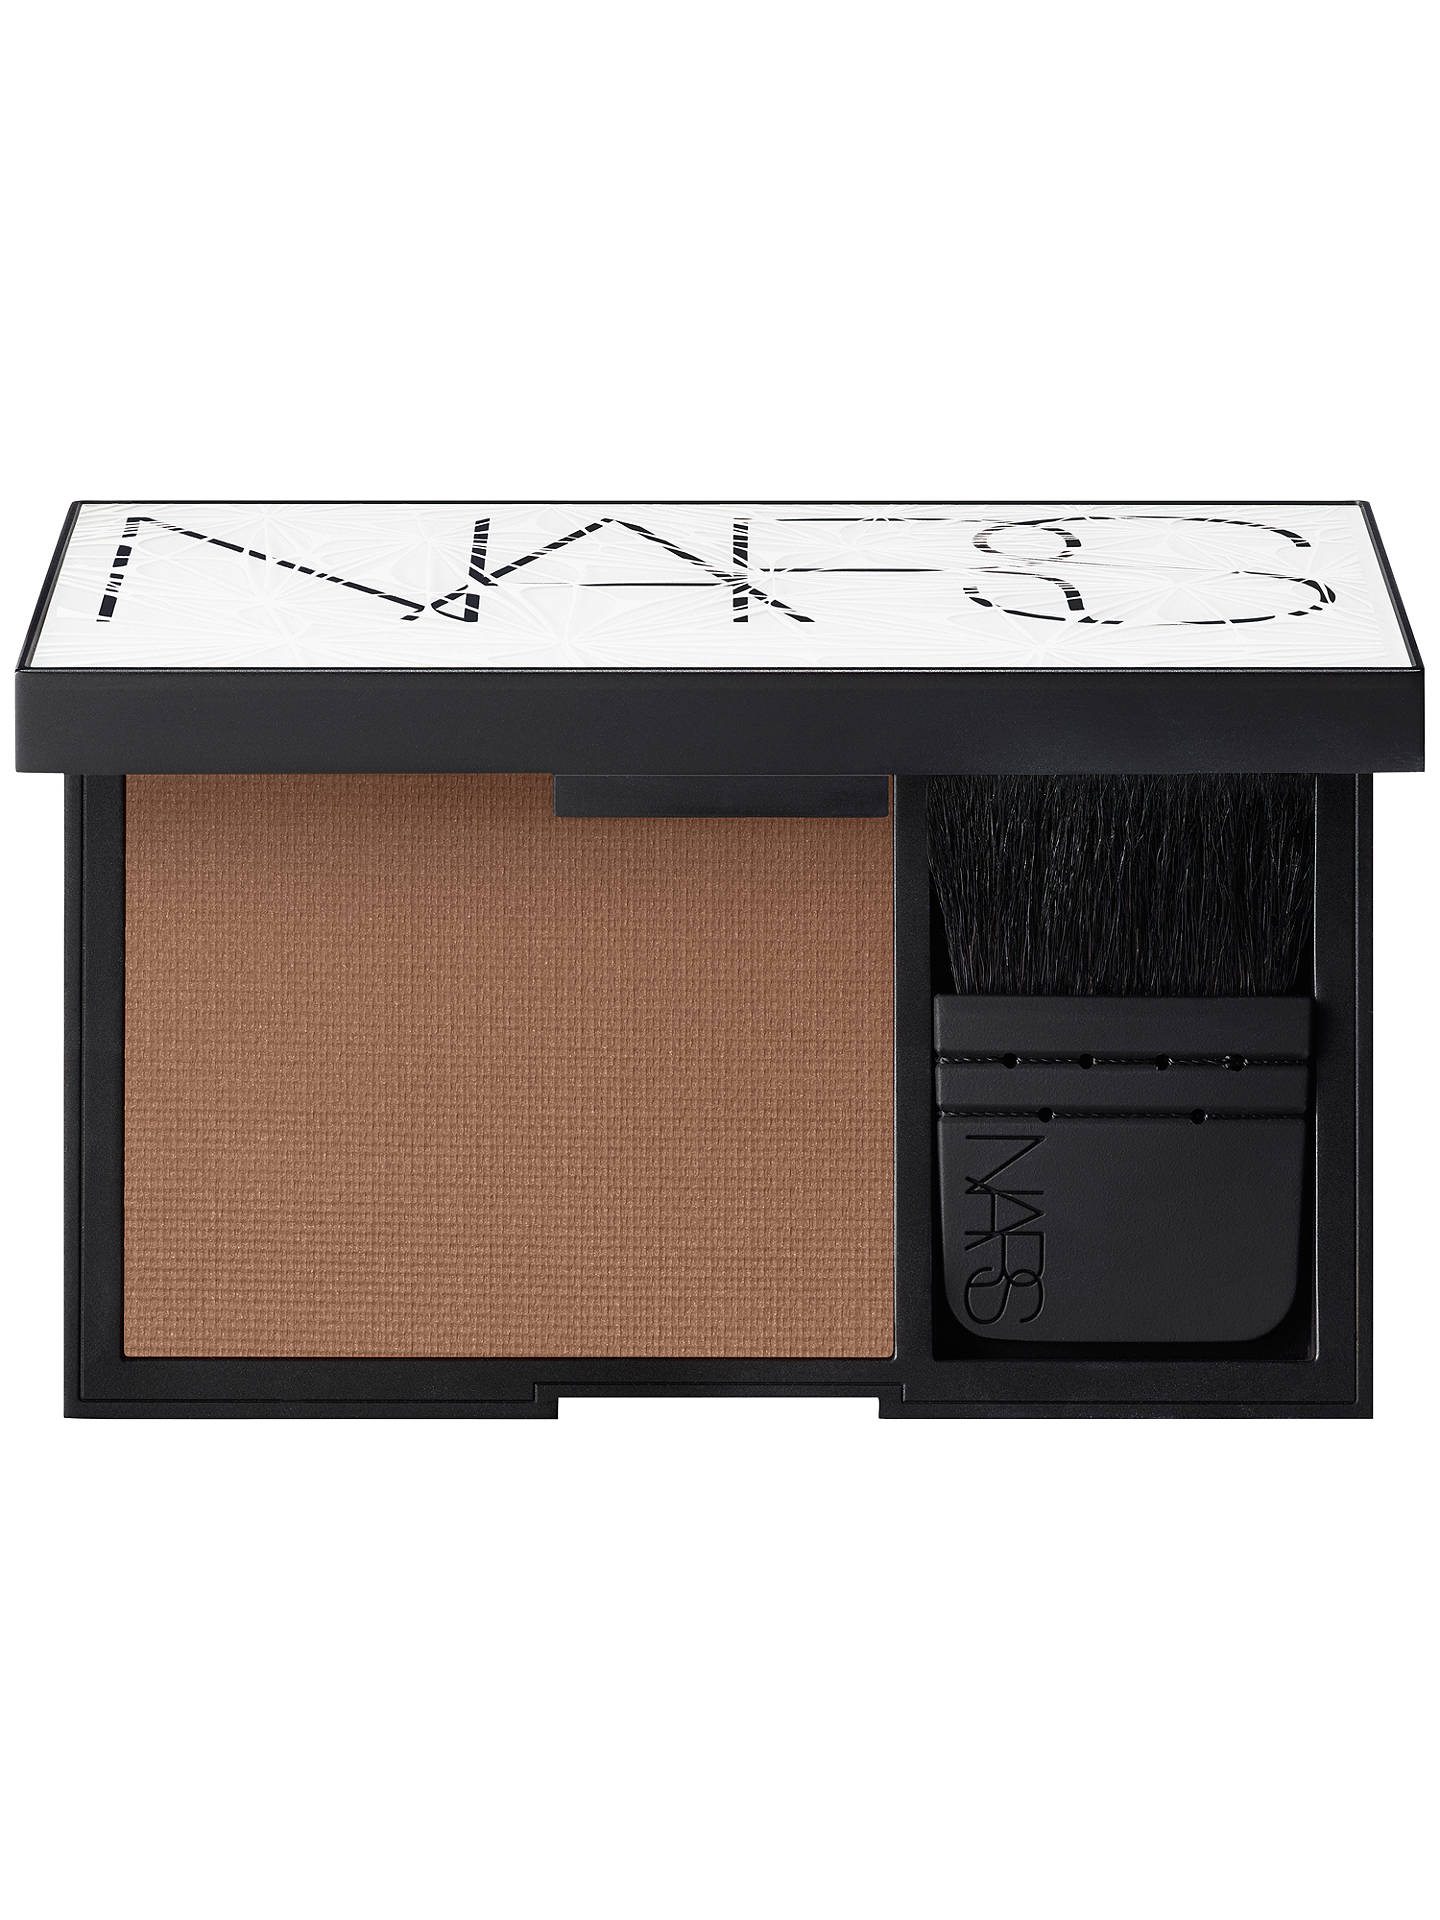 Buy NARS Algorithm Laguna Bronzing Powder Palette Online at johnlewis.com